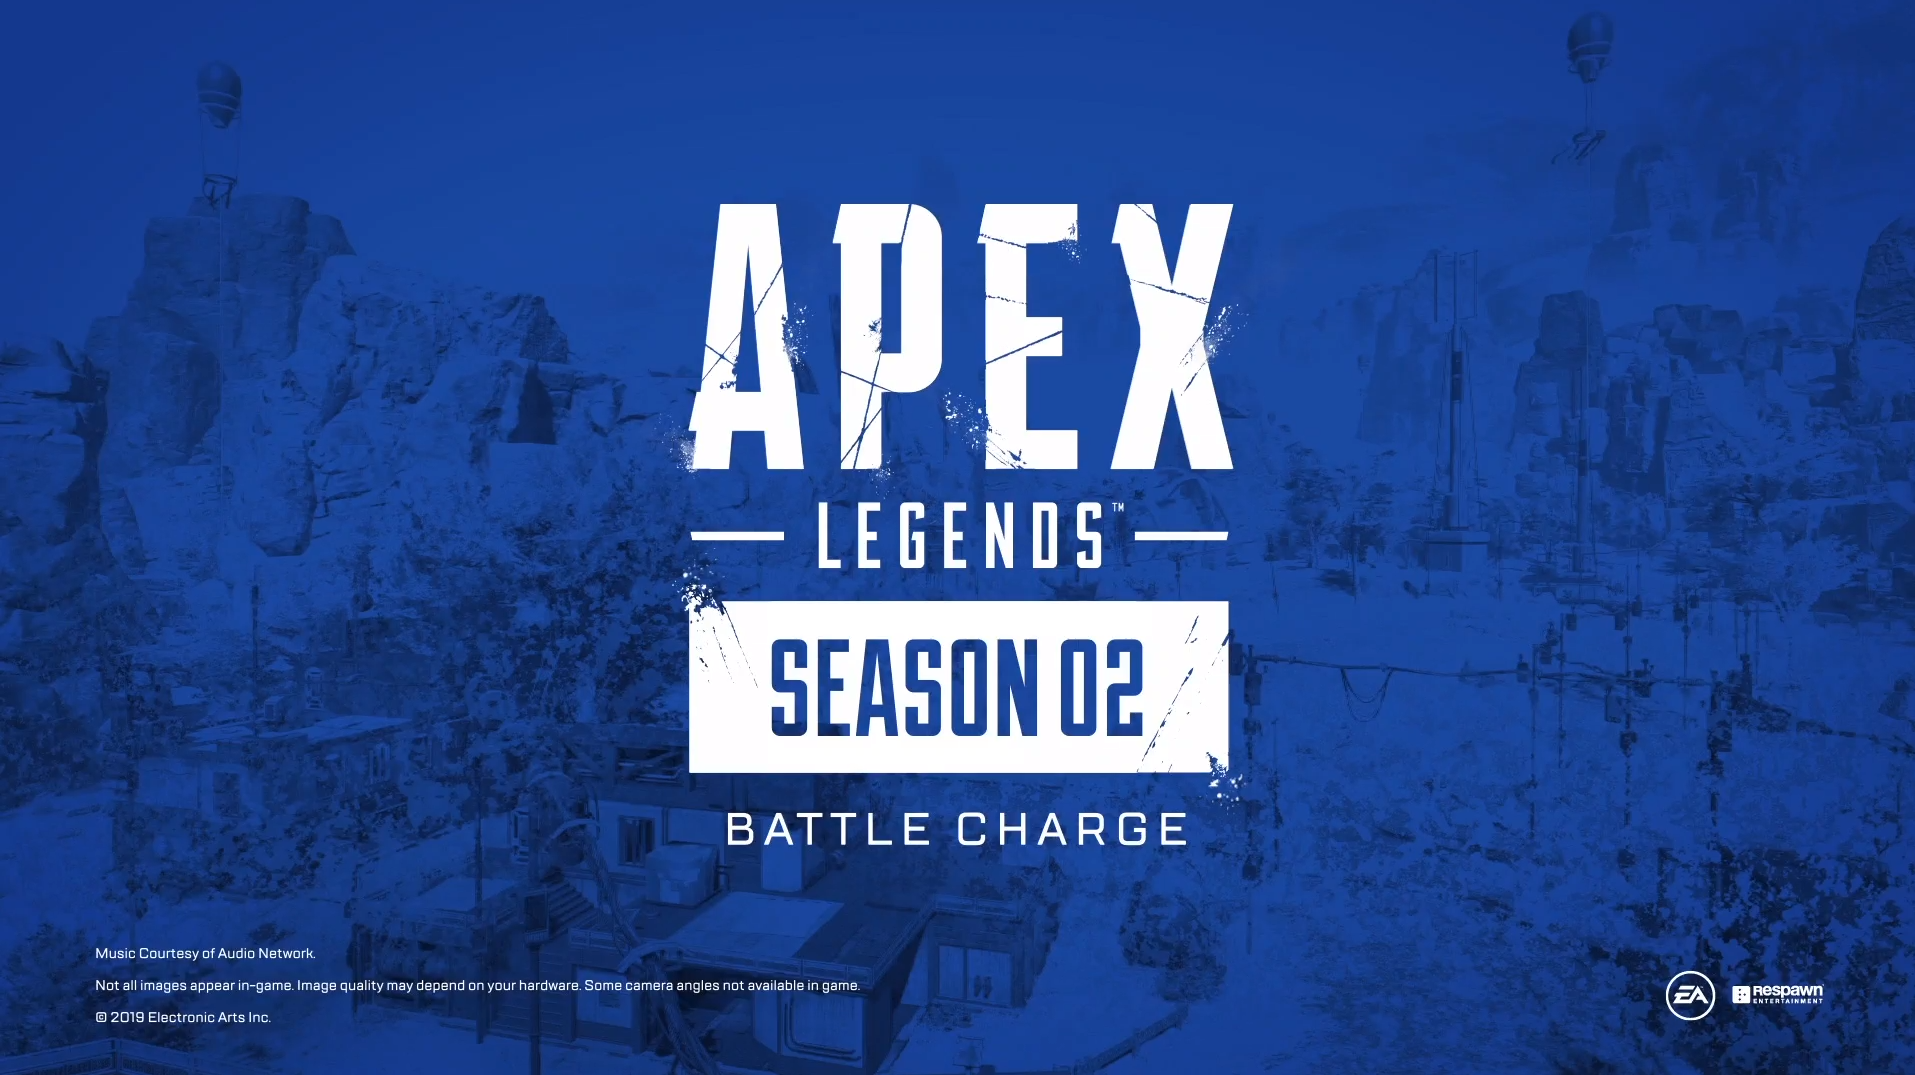 Apex Legends Season 2 details revealed including Wattson, Crypto